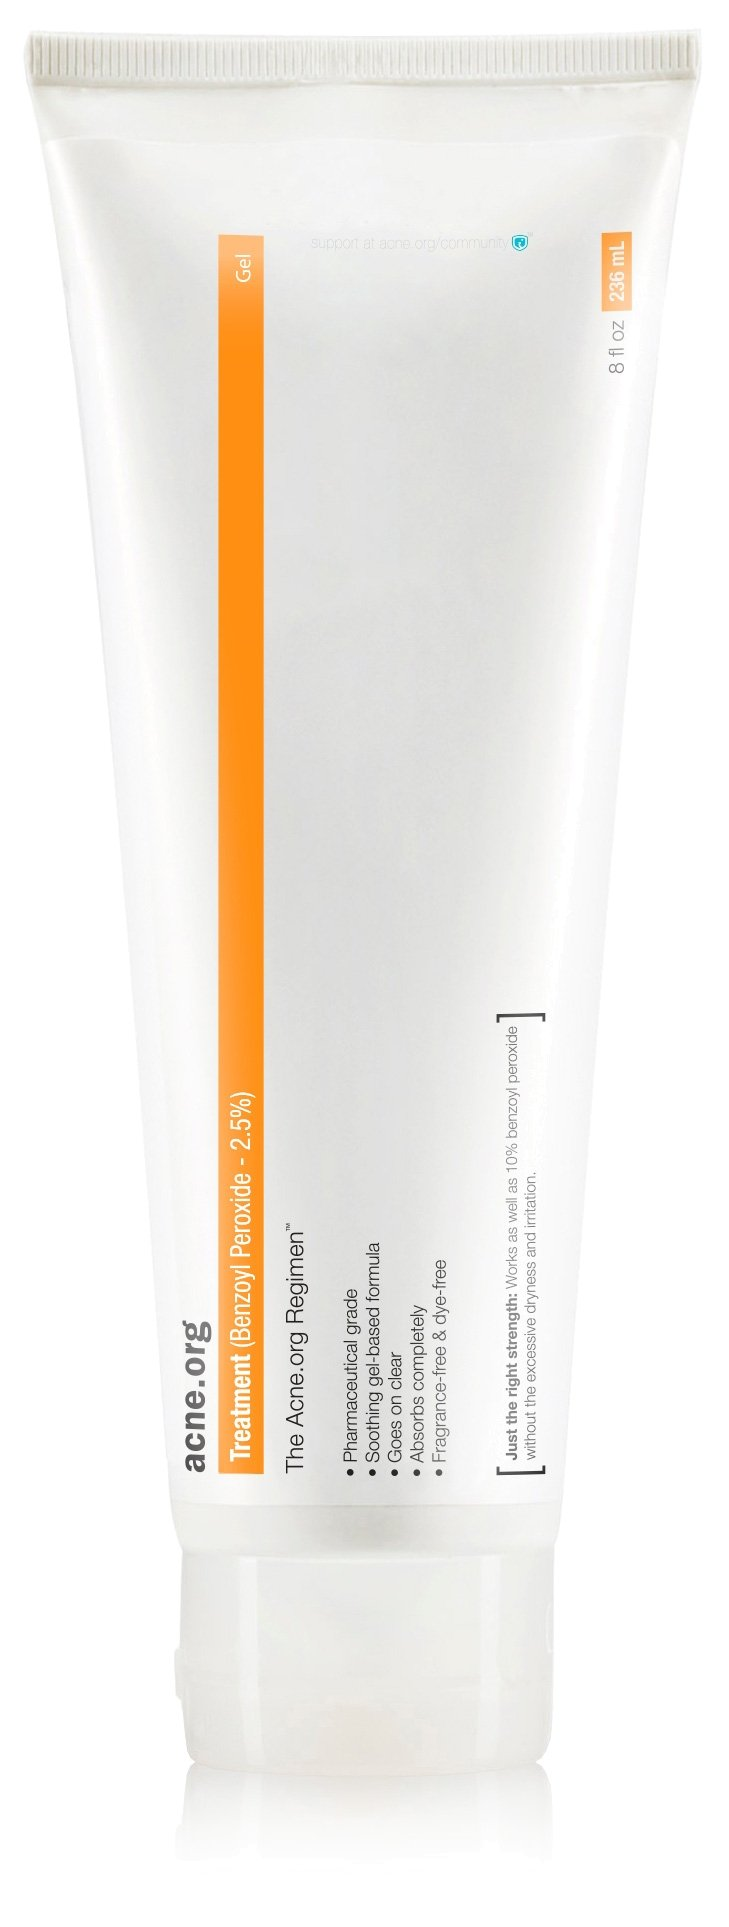 Acne.org 8 oz. Treatment (2.5% Benzoyl Peroxide)